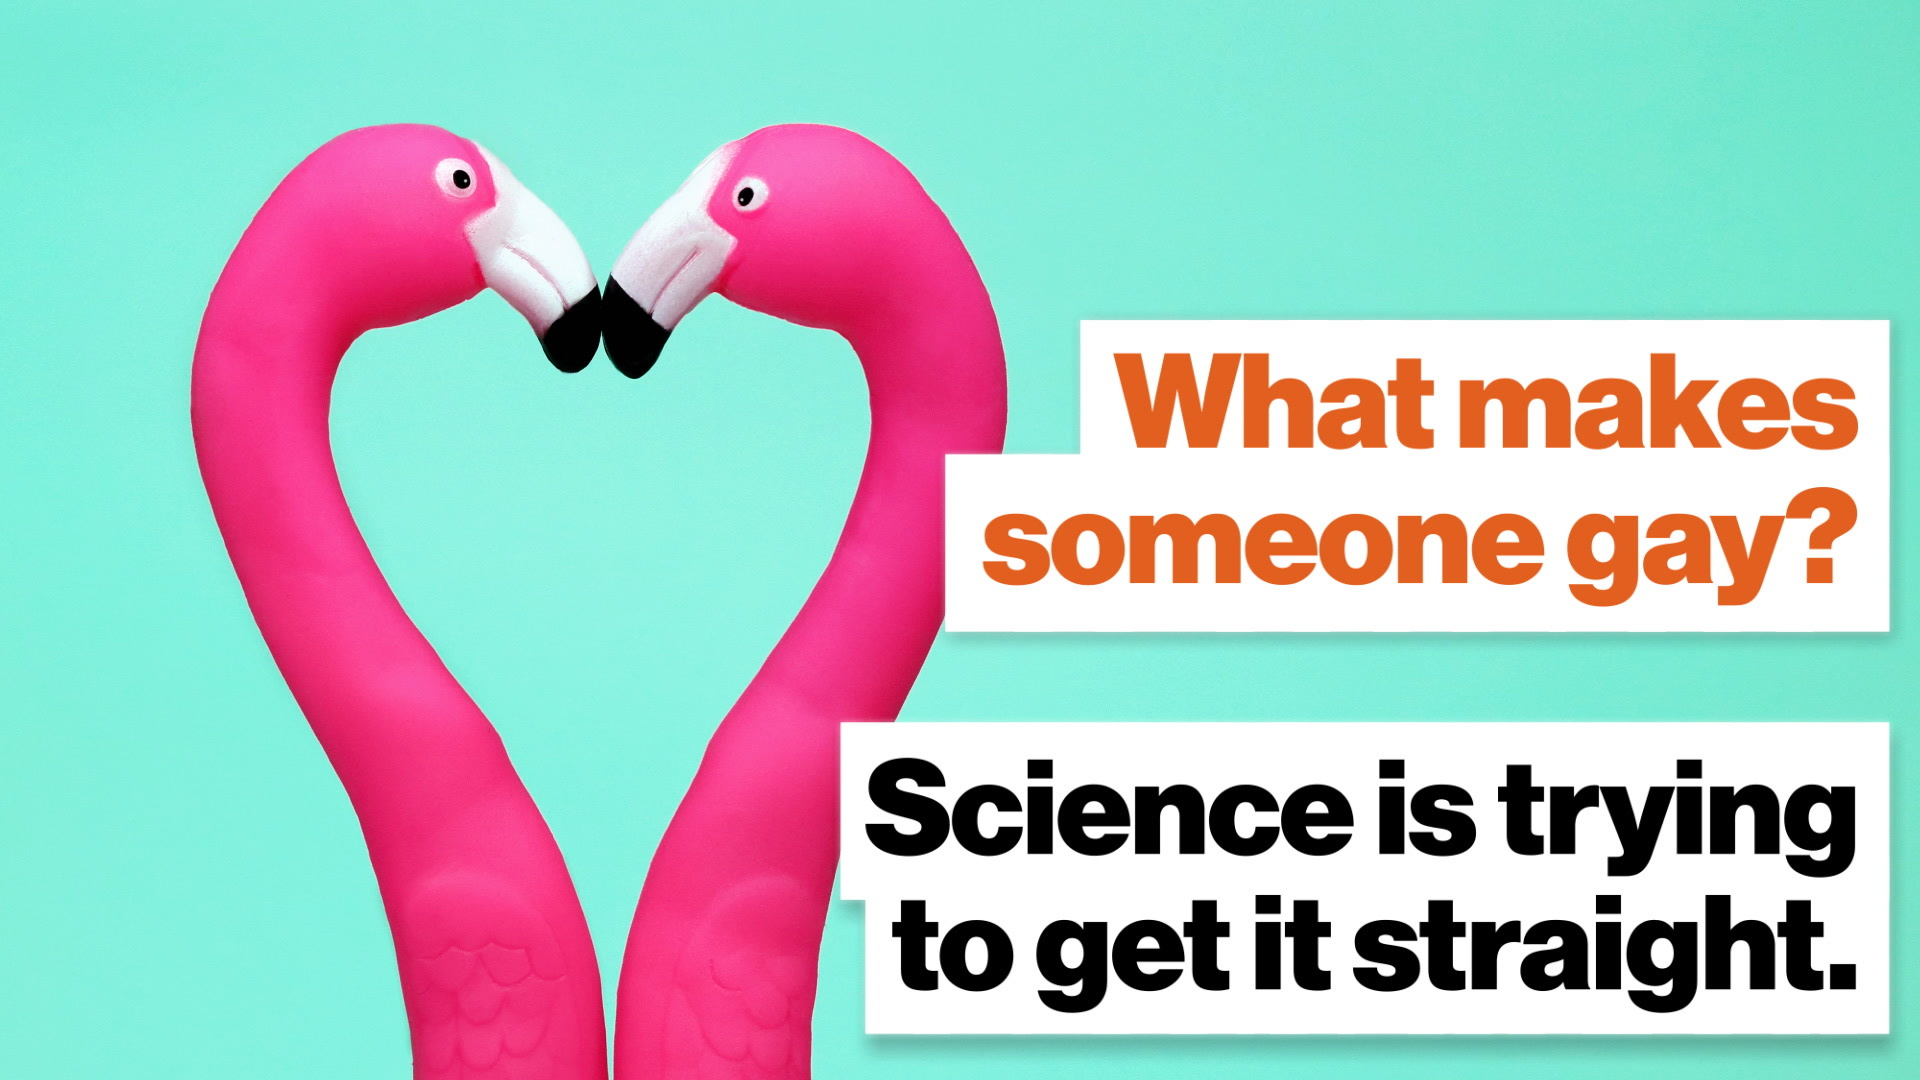 What makes someone gay? Science is trying to get it straight.